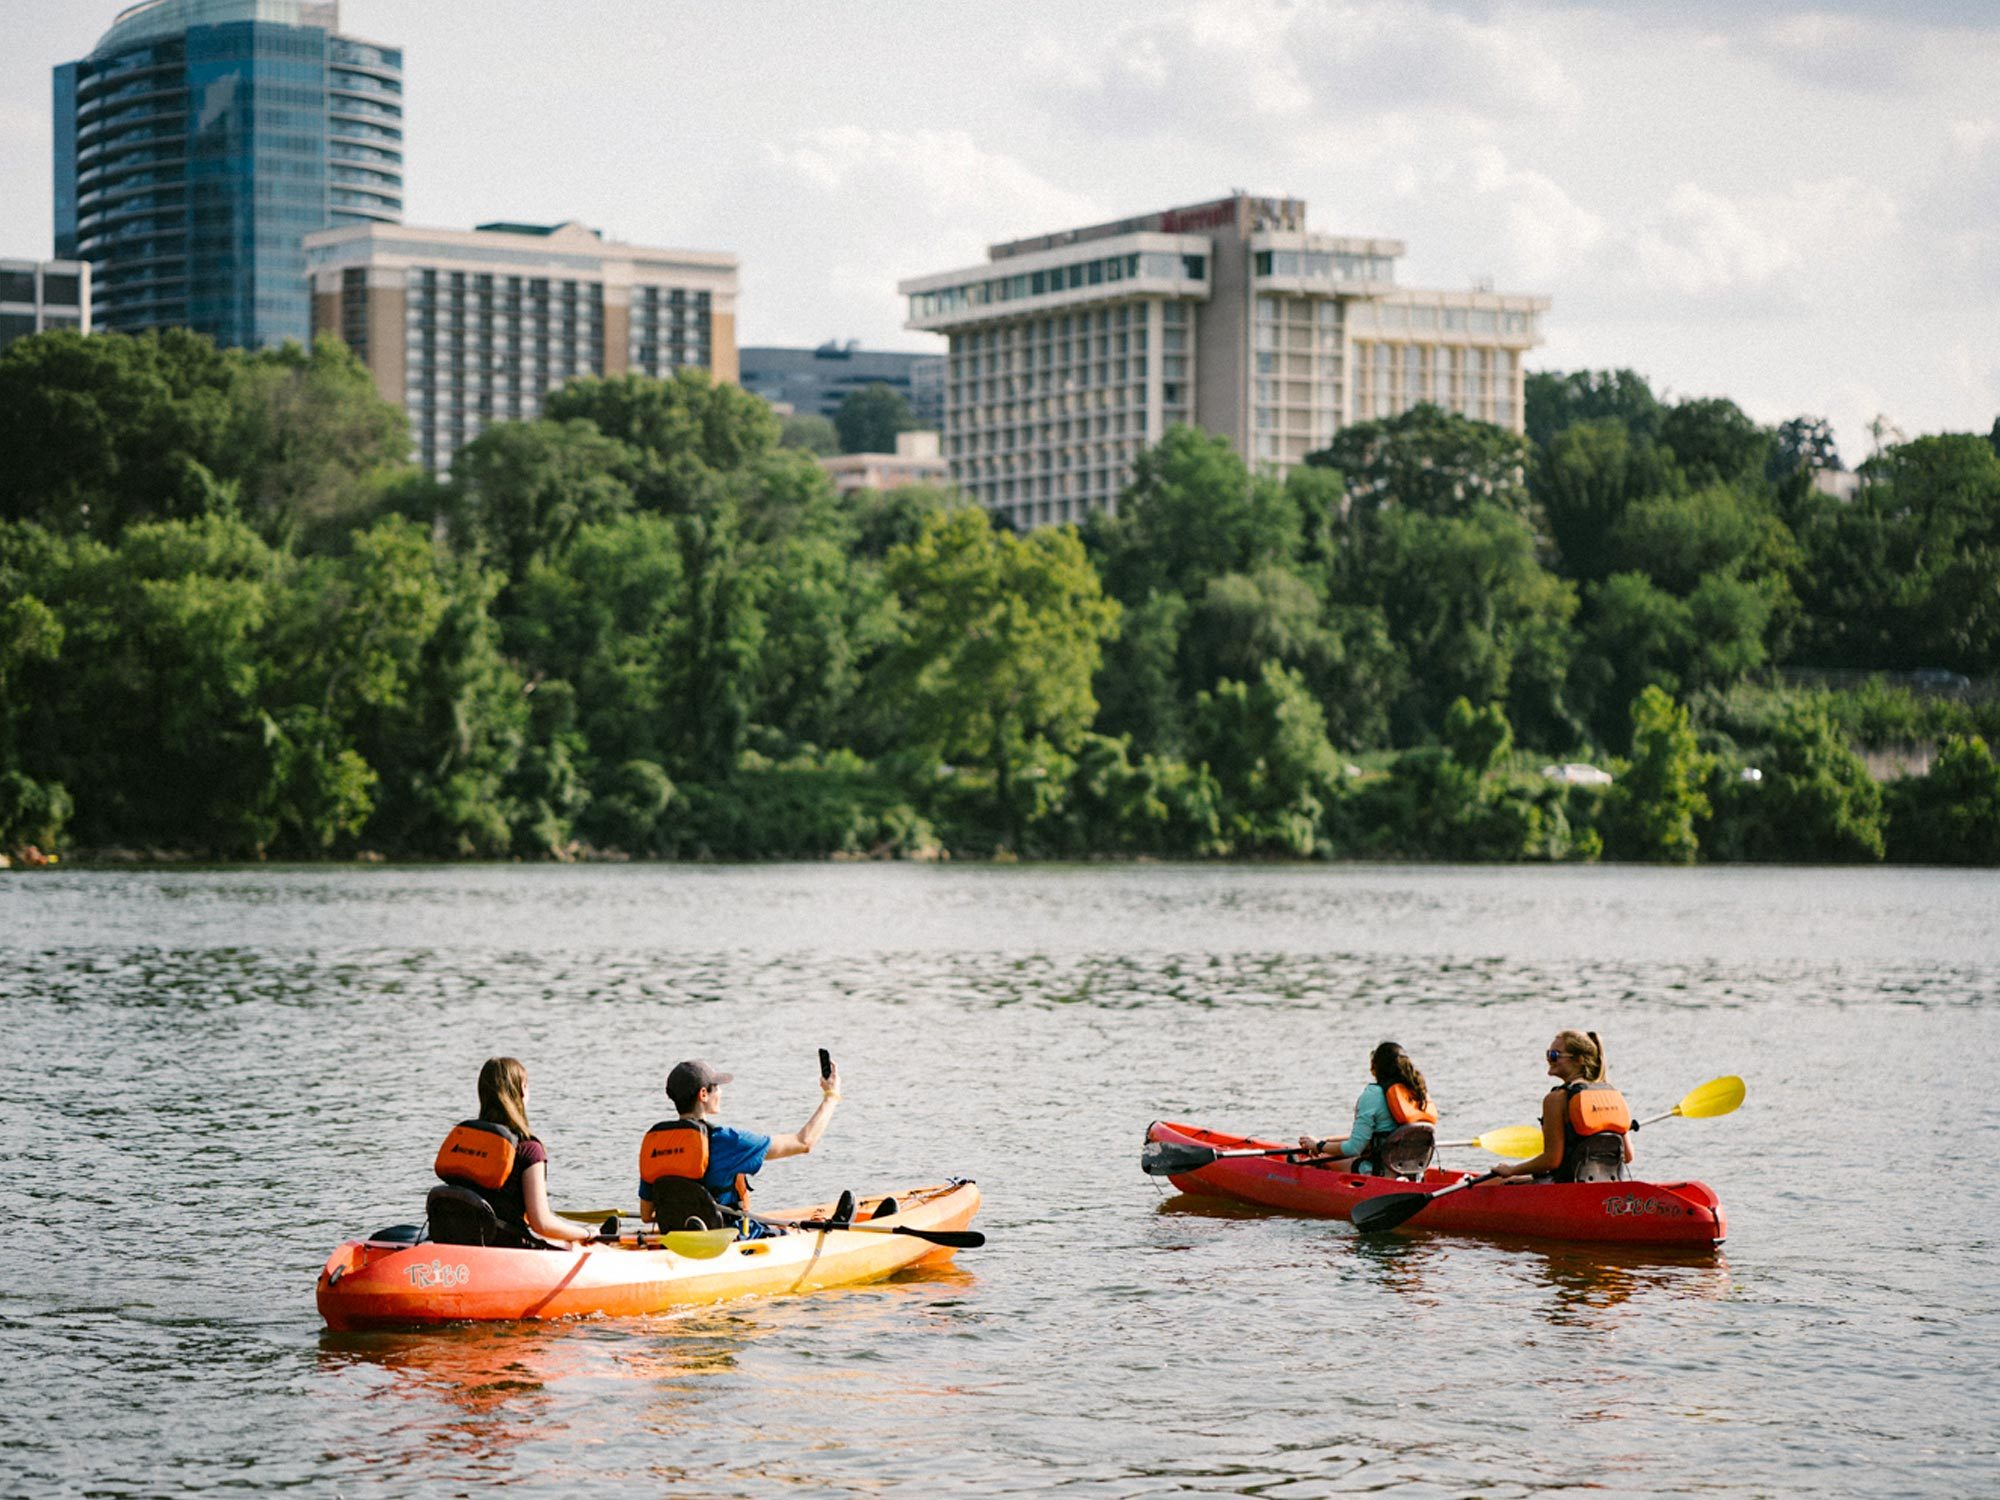 Students kayak on the Potomac River.